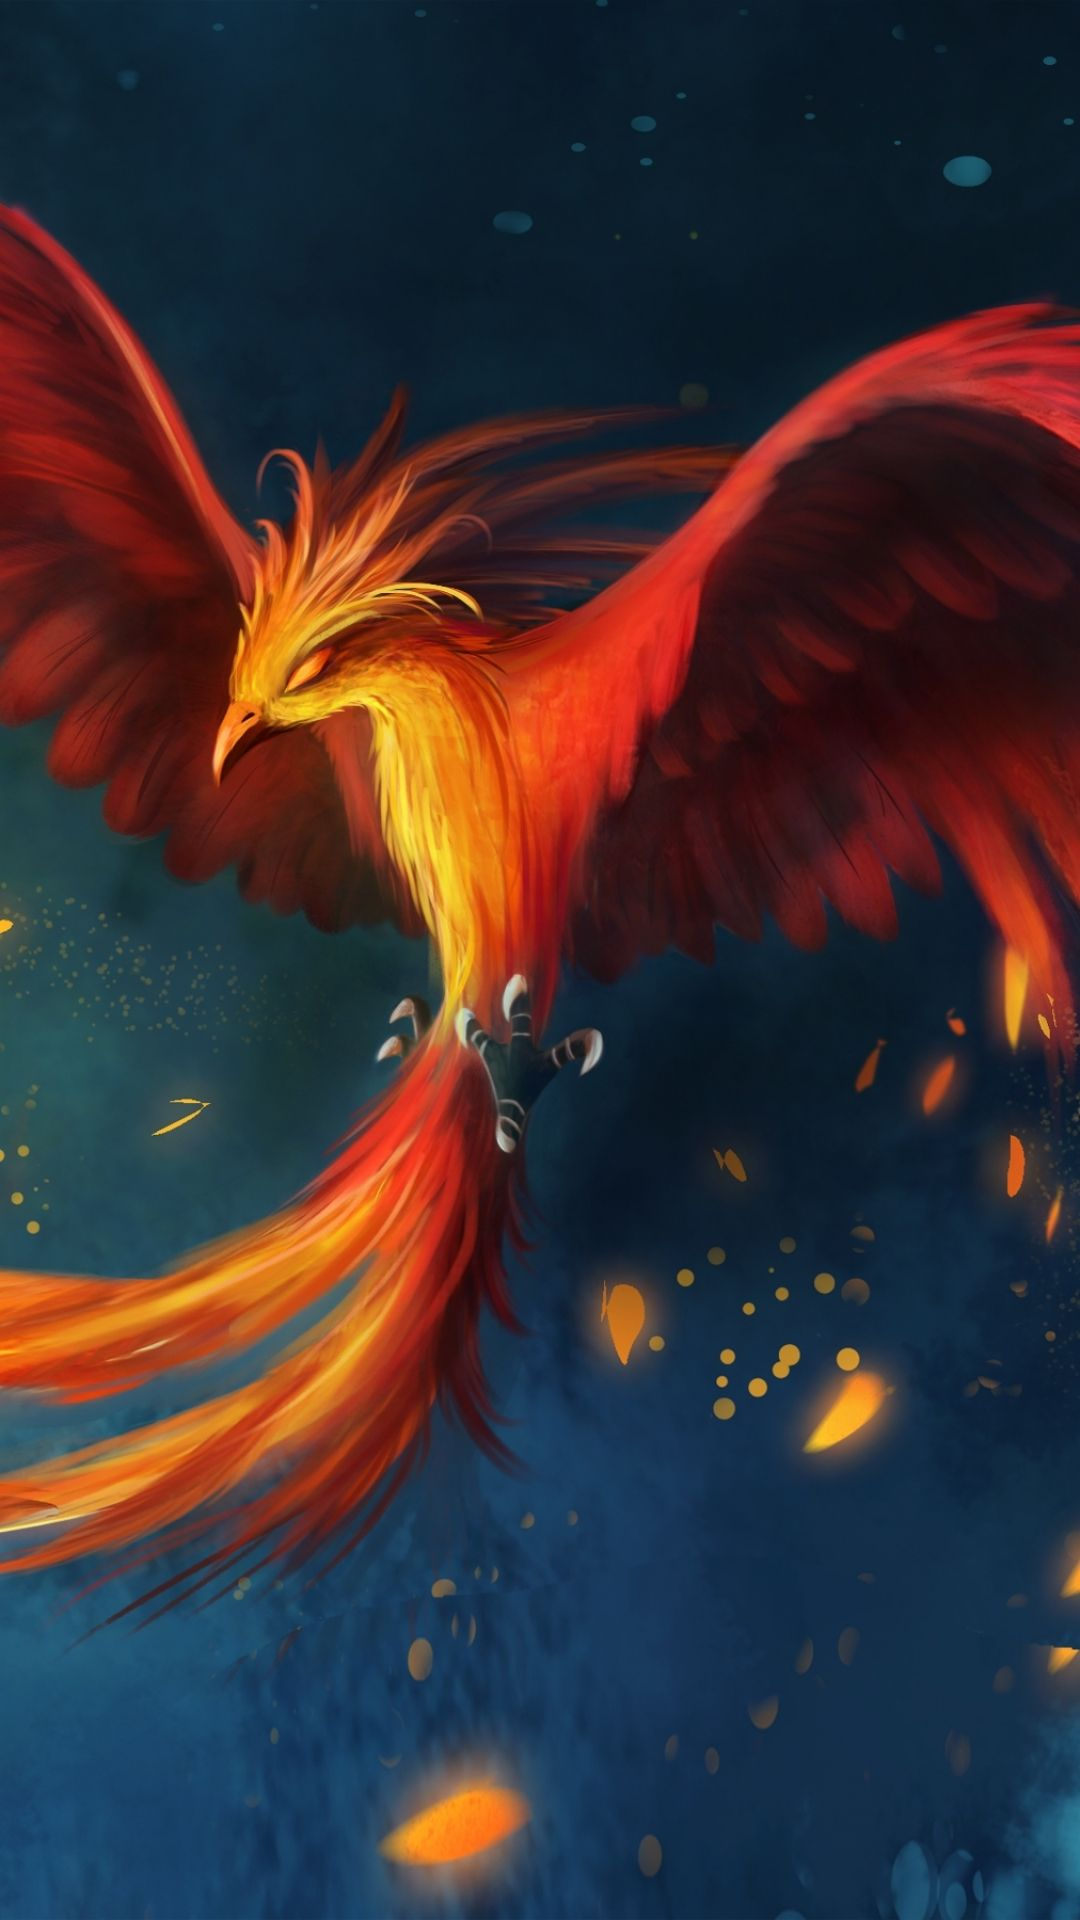 Phoenix apple iphone 6 plus 1080x1920 9 wallpapers - I phone fantasy wallpapers ...